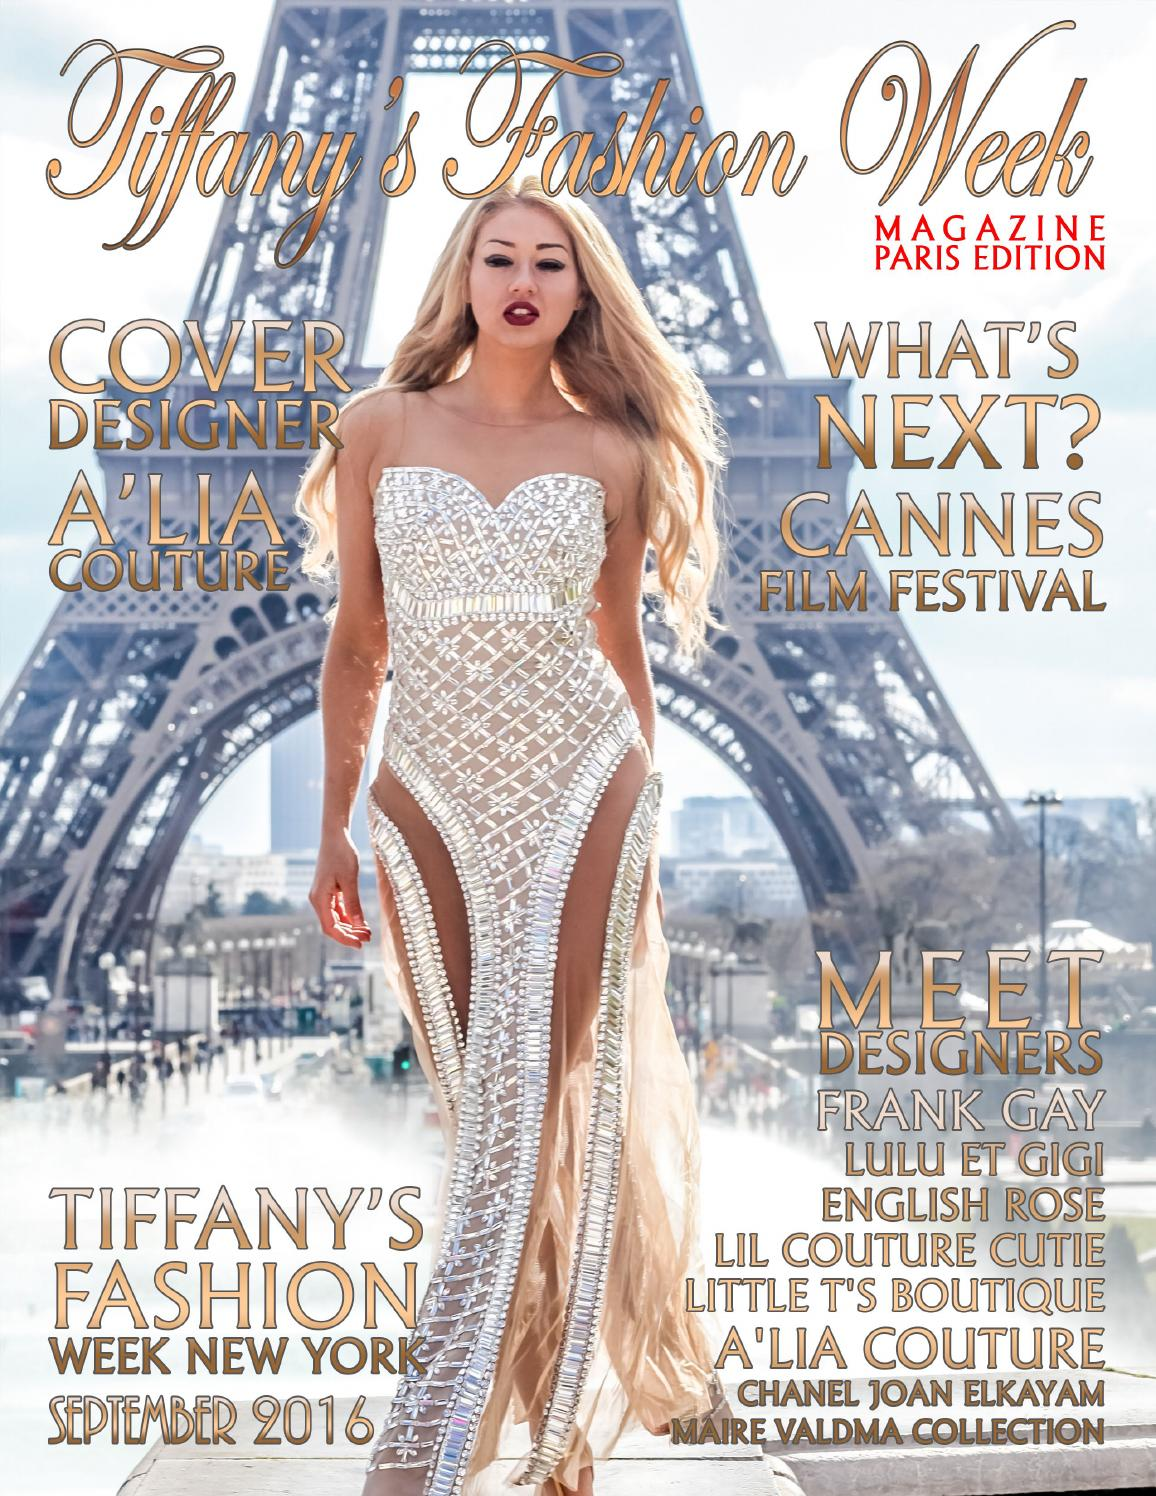 Tiffany S Fashion Week Magazine Paris Edition Autumn Winter 2016 2017 By Tiffany Mccall Issuu